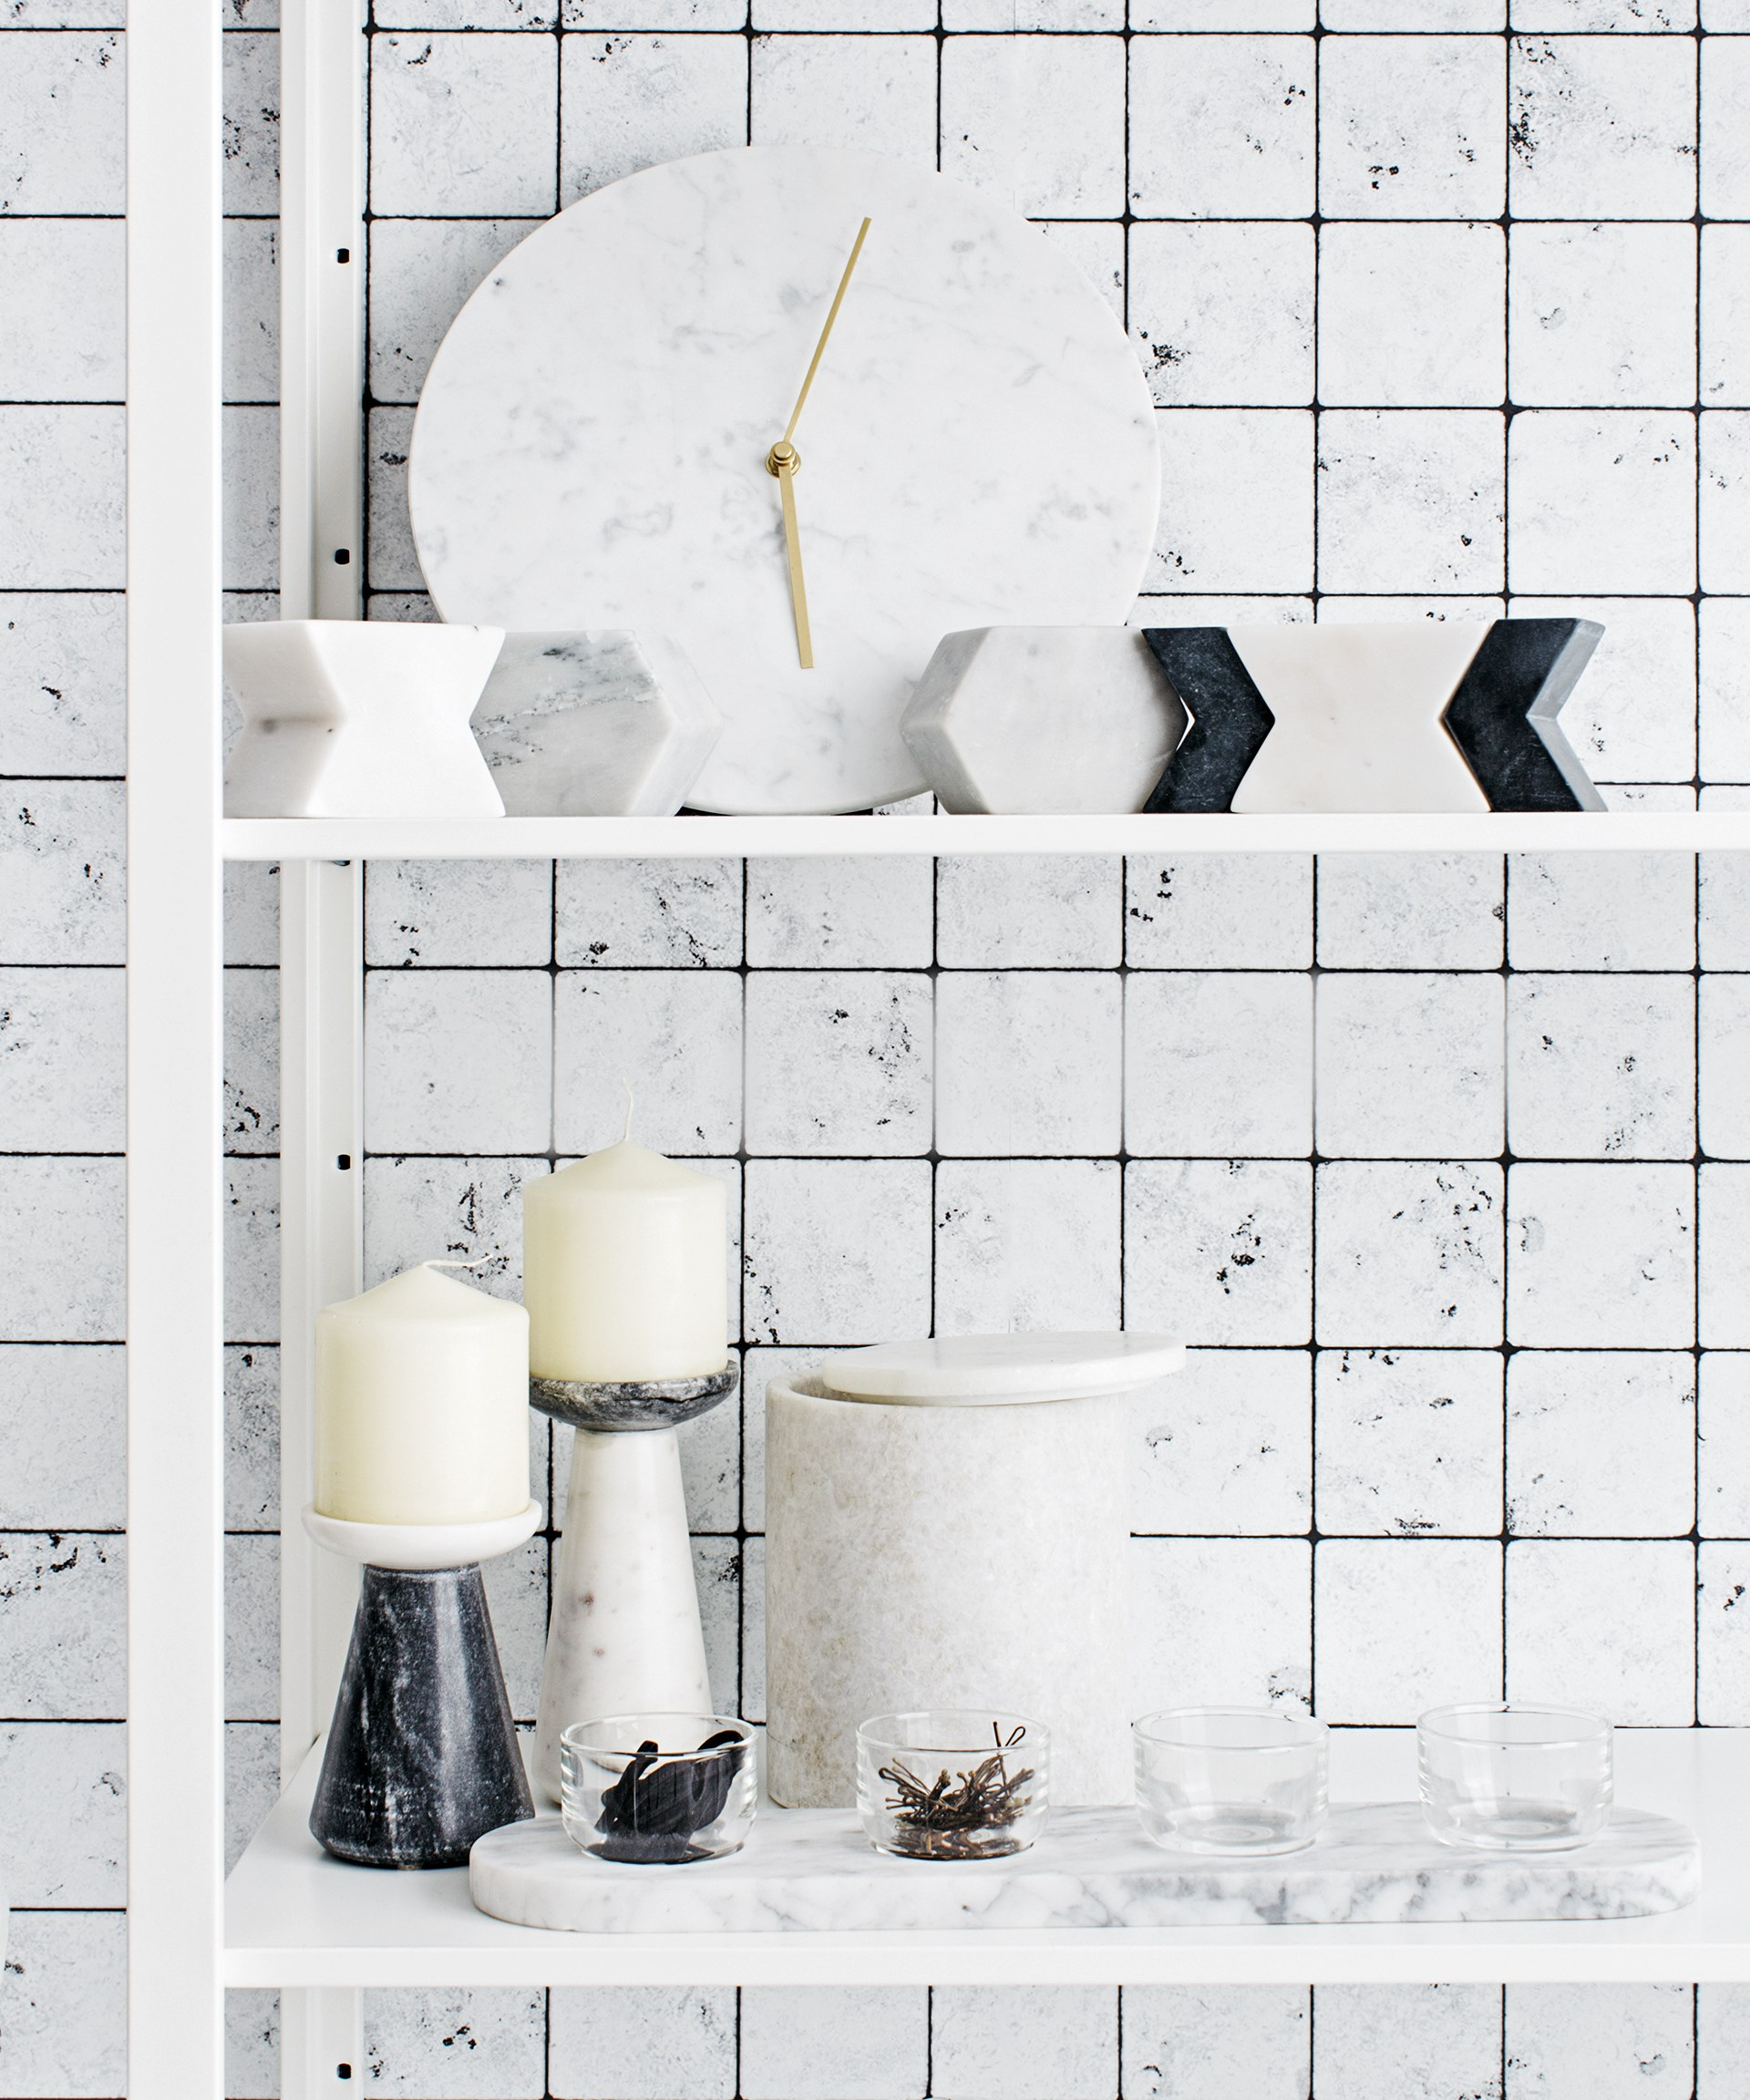 If you want modern minimal, you can't have too much storage – clutter's a no-no.  Open shelves, such as the simple metal shelving unit used in this bathroom, are a great way to display items while keeping work surfaces free – but you have to like dusting! Alternatively, drawers, broad and deep, ensure you can reach all items in every corner of your joinery, while push-to-open mechanisms or recessed handles may better suit the minimalist aesthetic.